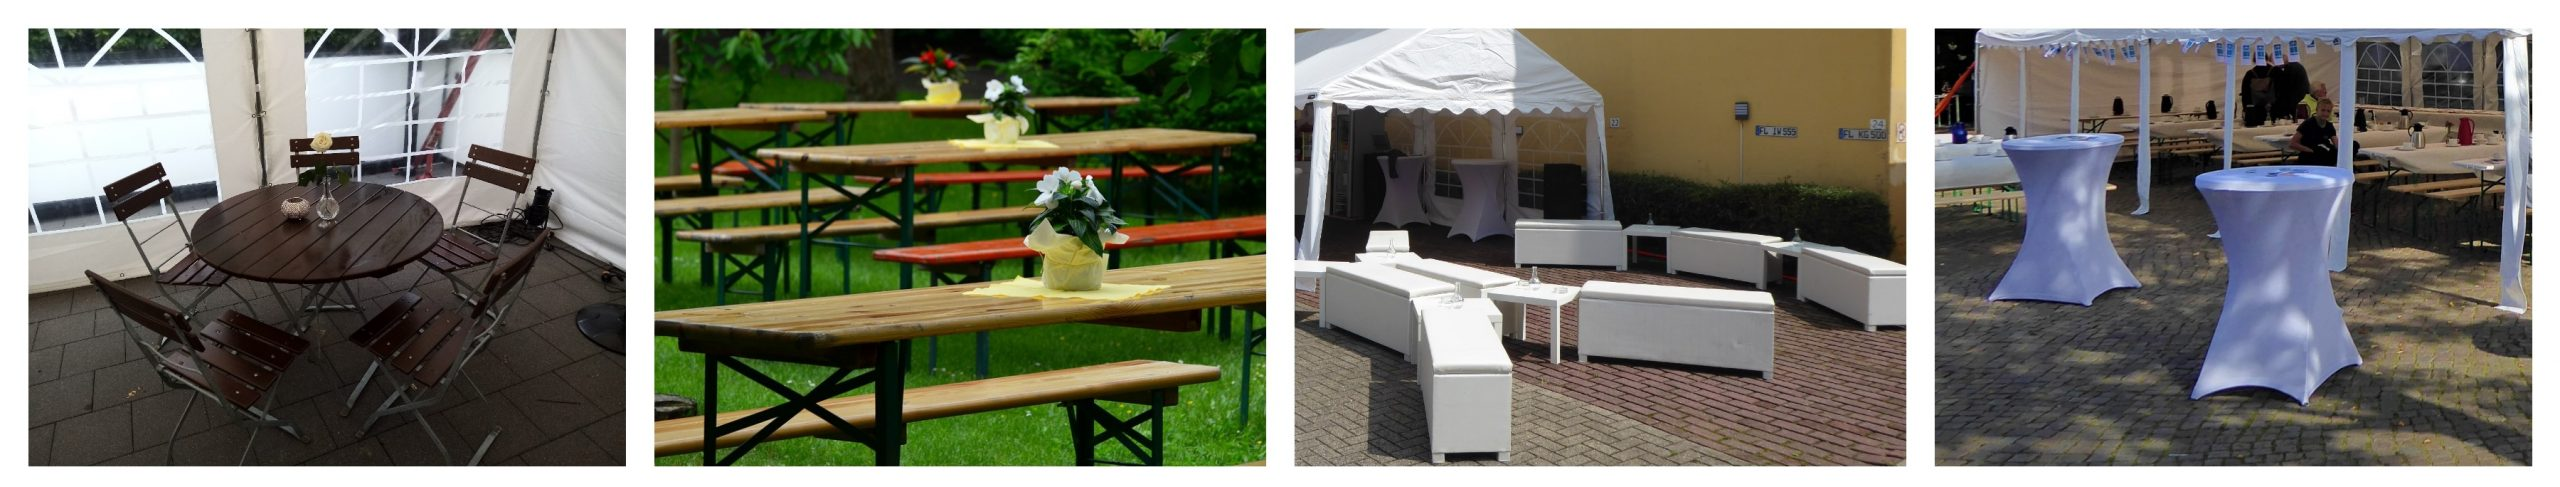 Rent beer tent set